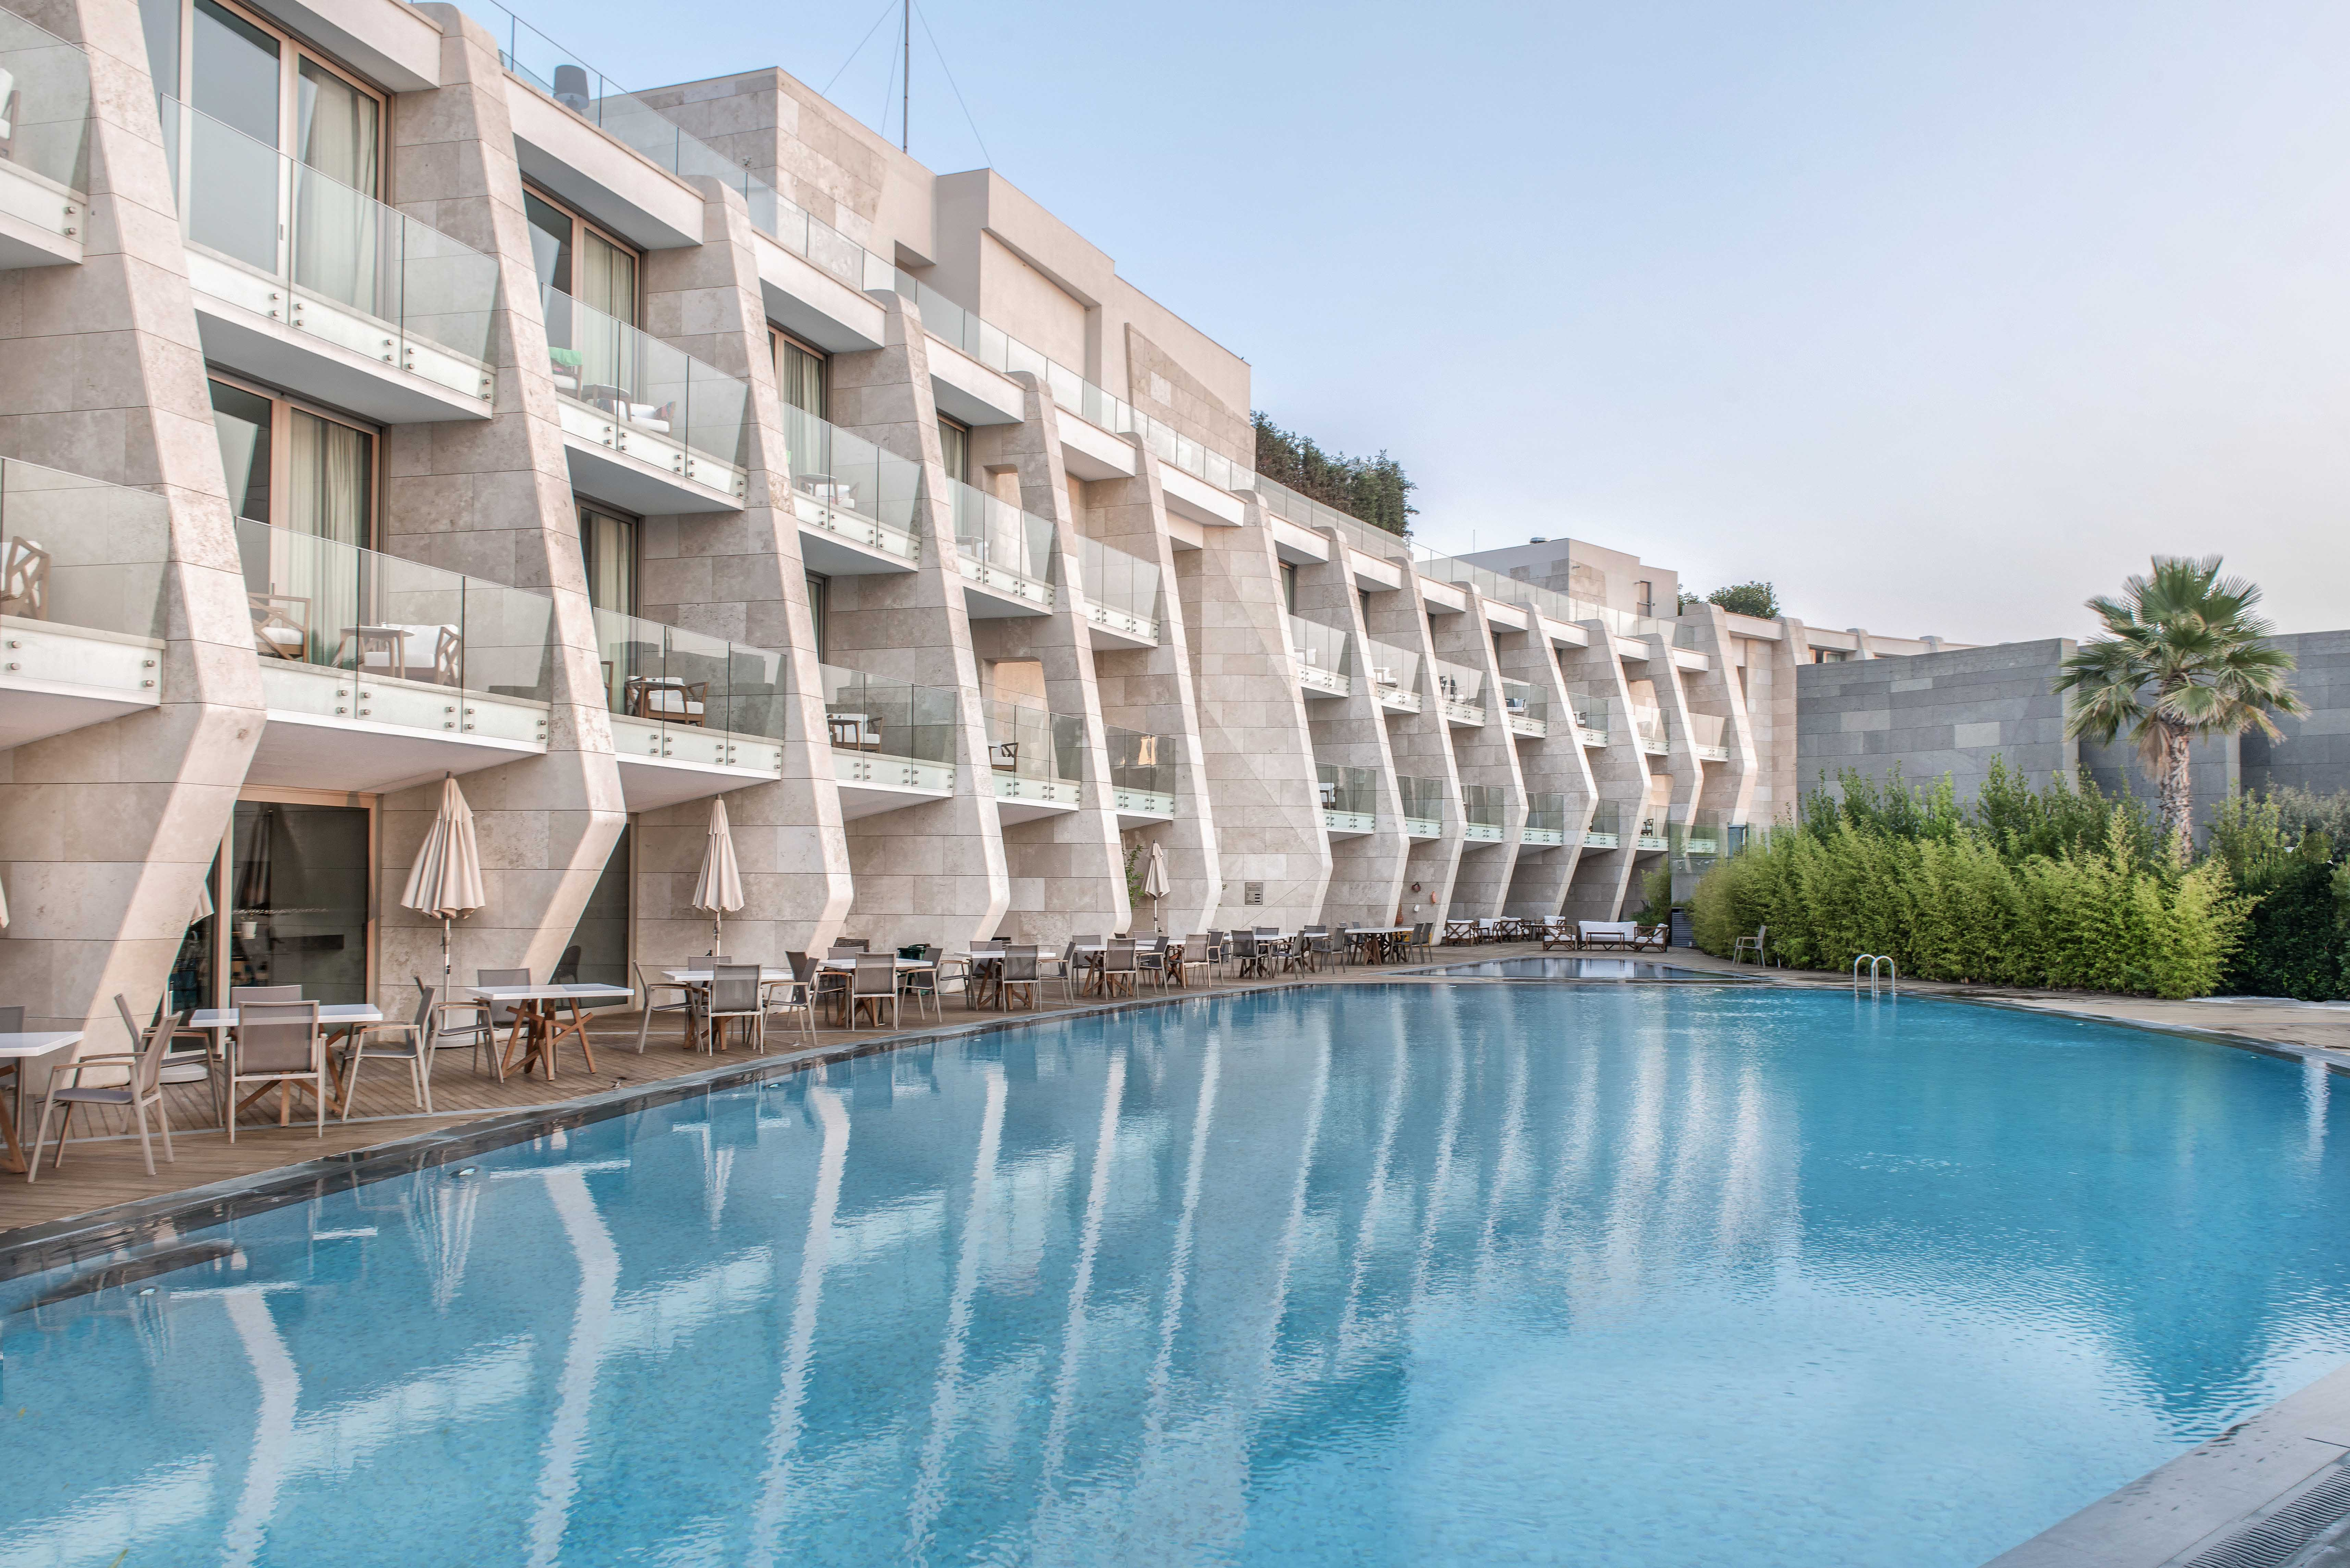 ARCHELLO- SWISSOTEL RESORT BODRUM BEACH